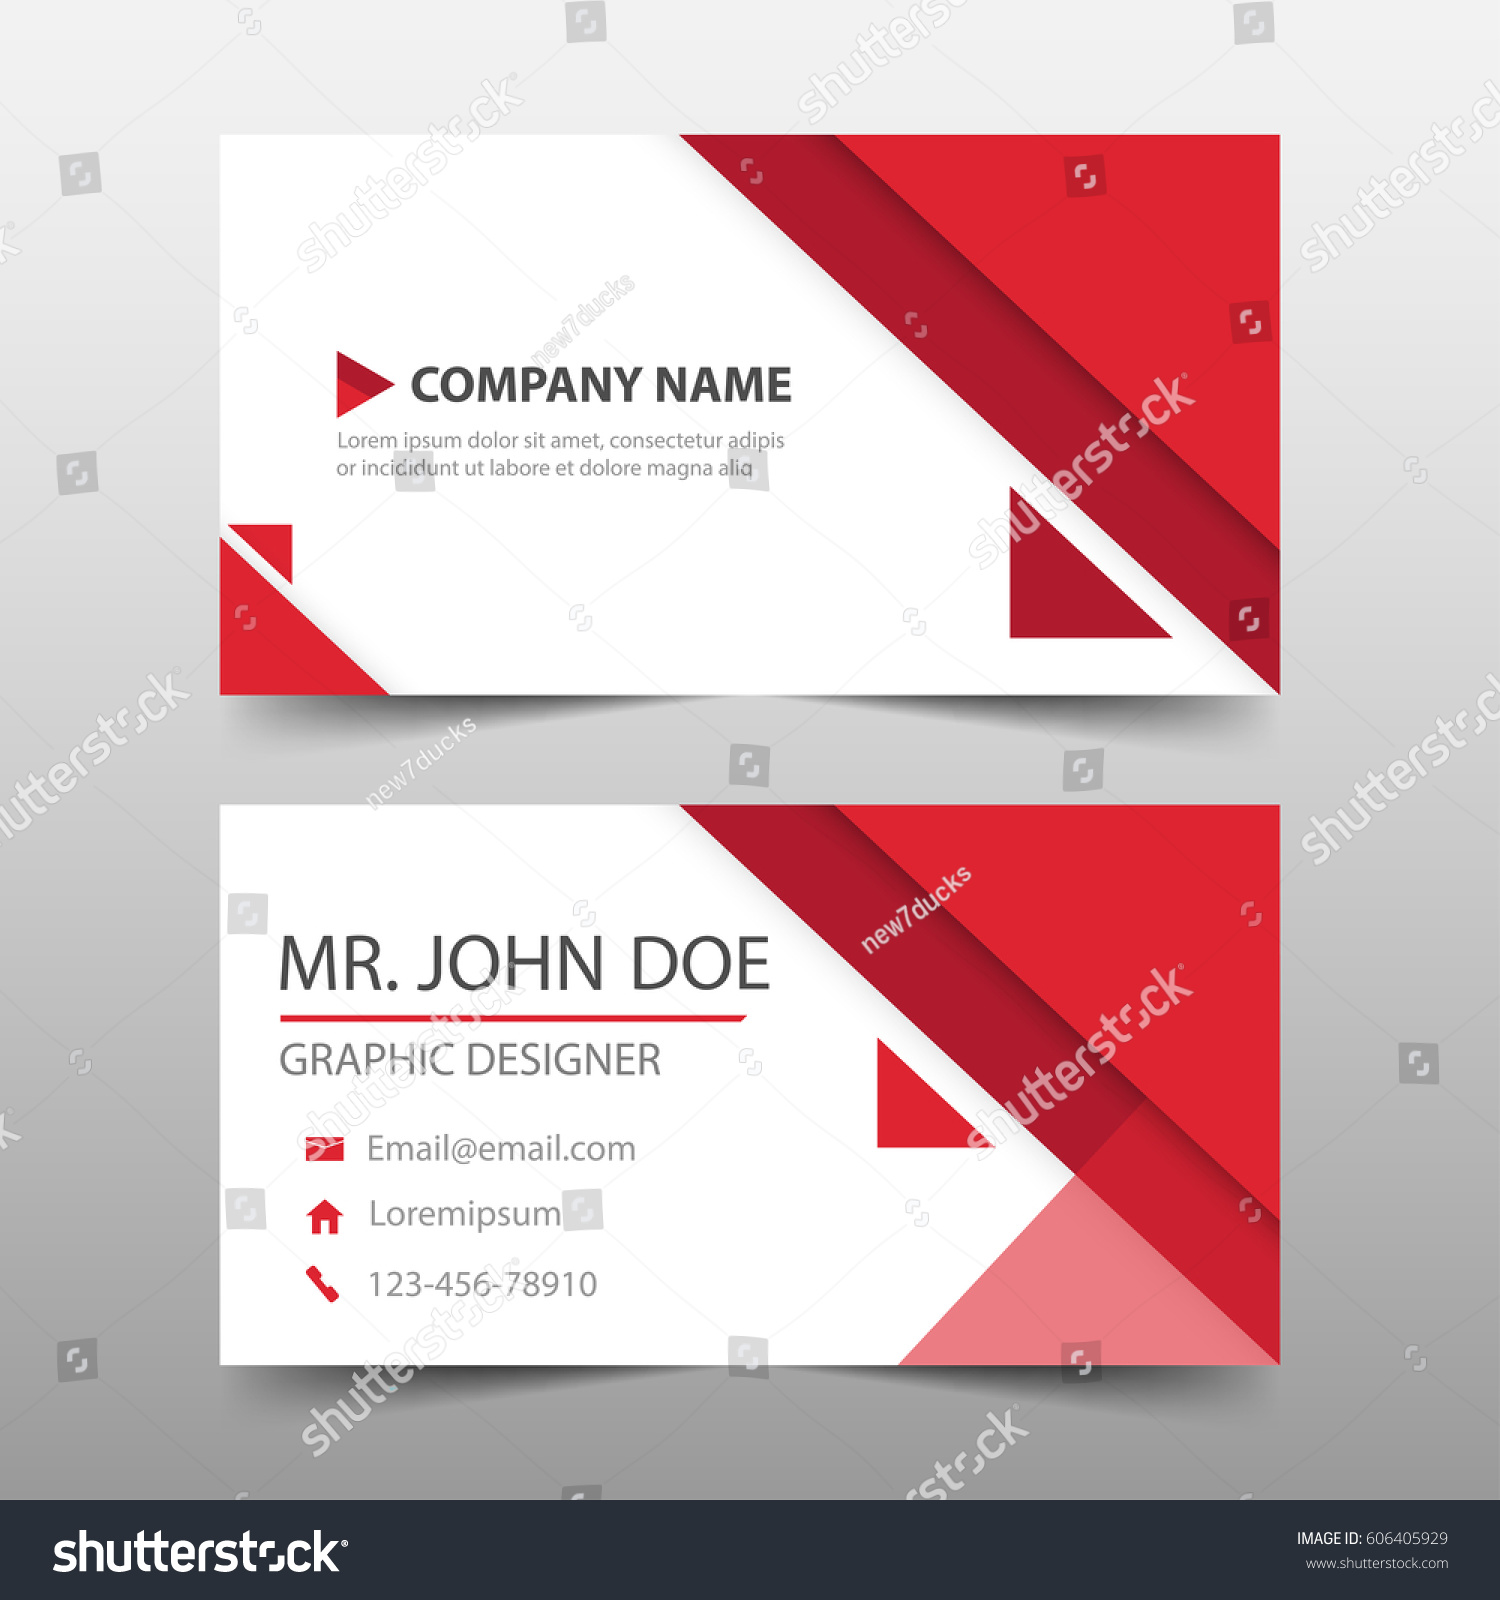 red triangle corporate business card name stock vector 606405929 shutterstock. Black Bedroom Furniture Sets. Home Design Ideas